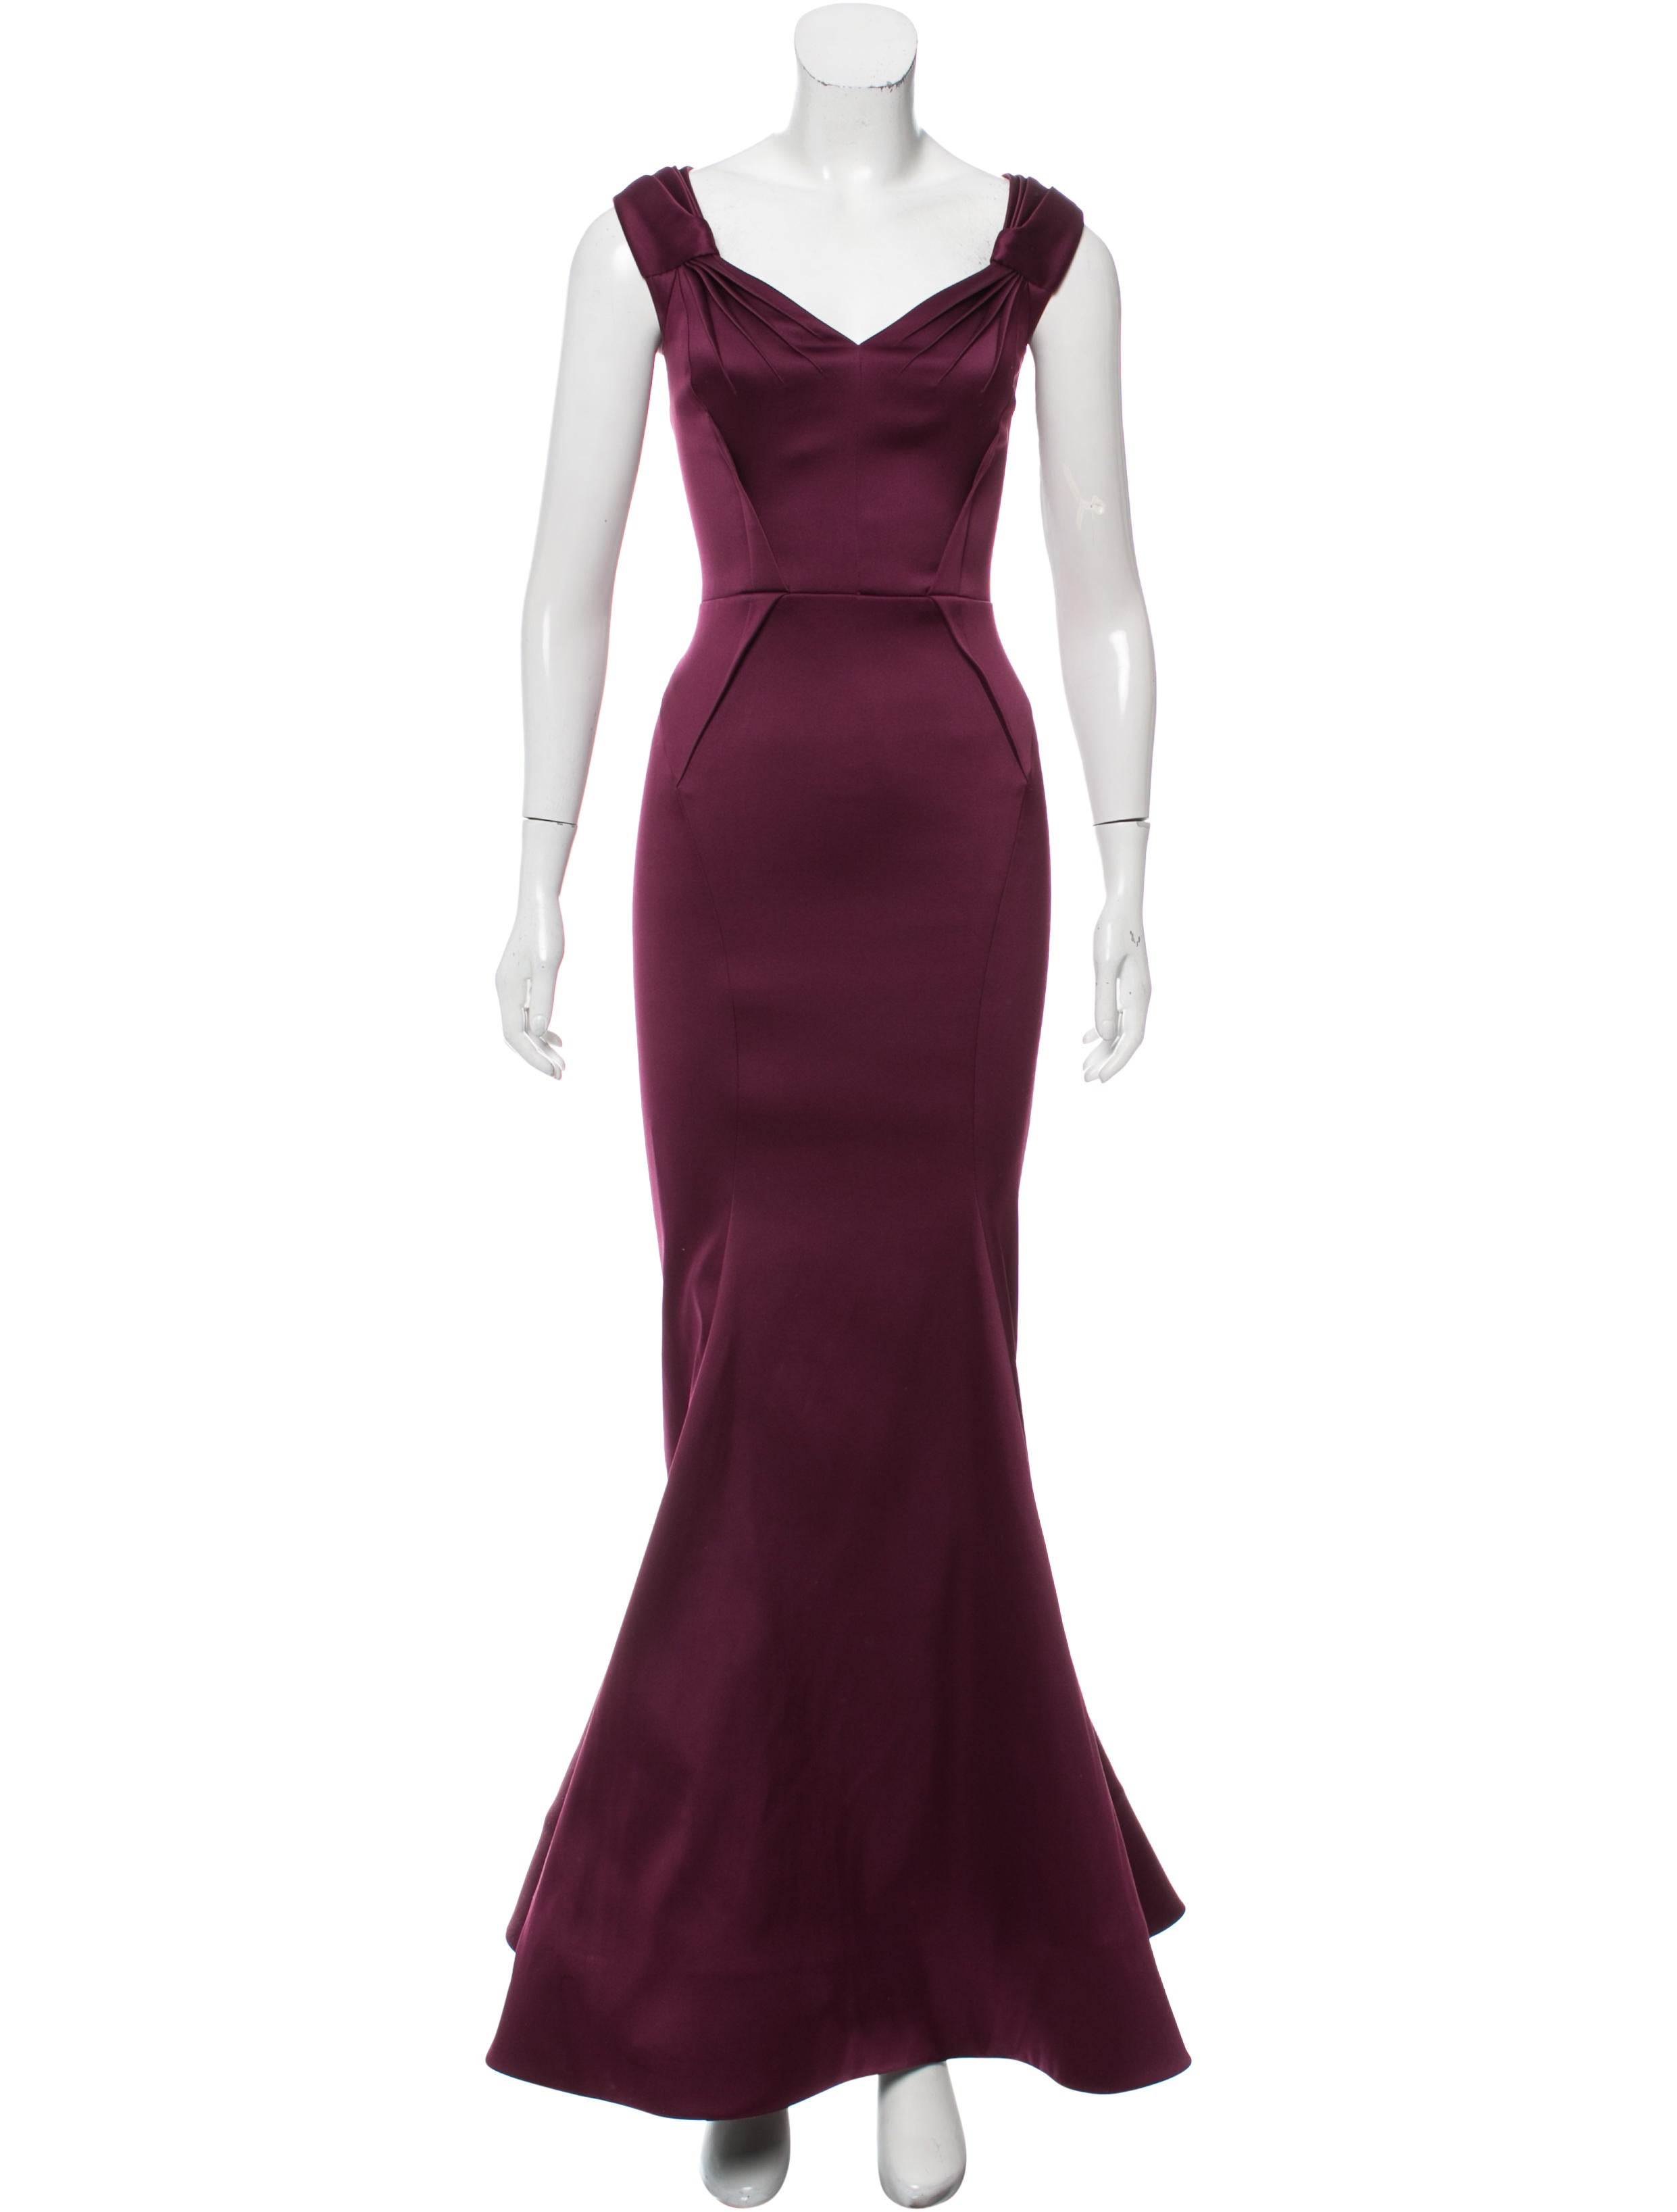 Zac Posen Structured Evening Dress - Clothing - ZAC25665   The RealReal